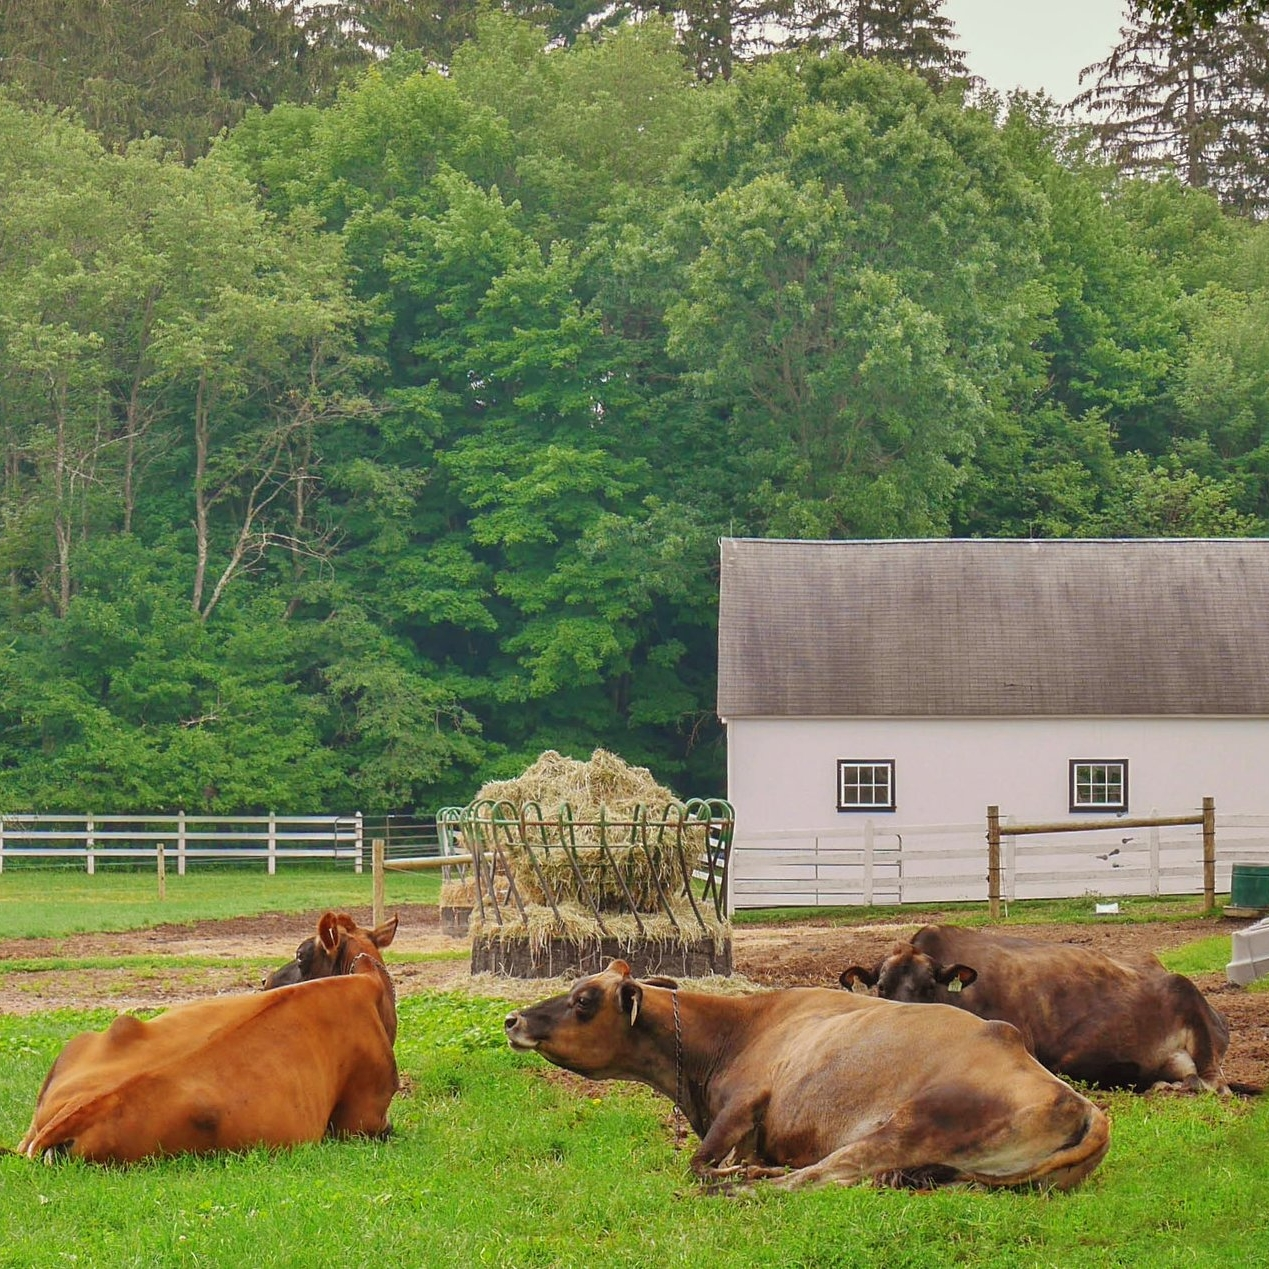 Farms for Foodies - Farming plays a tremendous role in the past & present of the Litchfield Hills